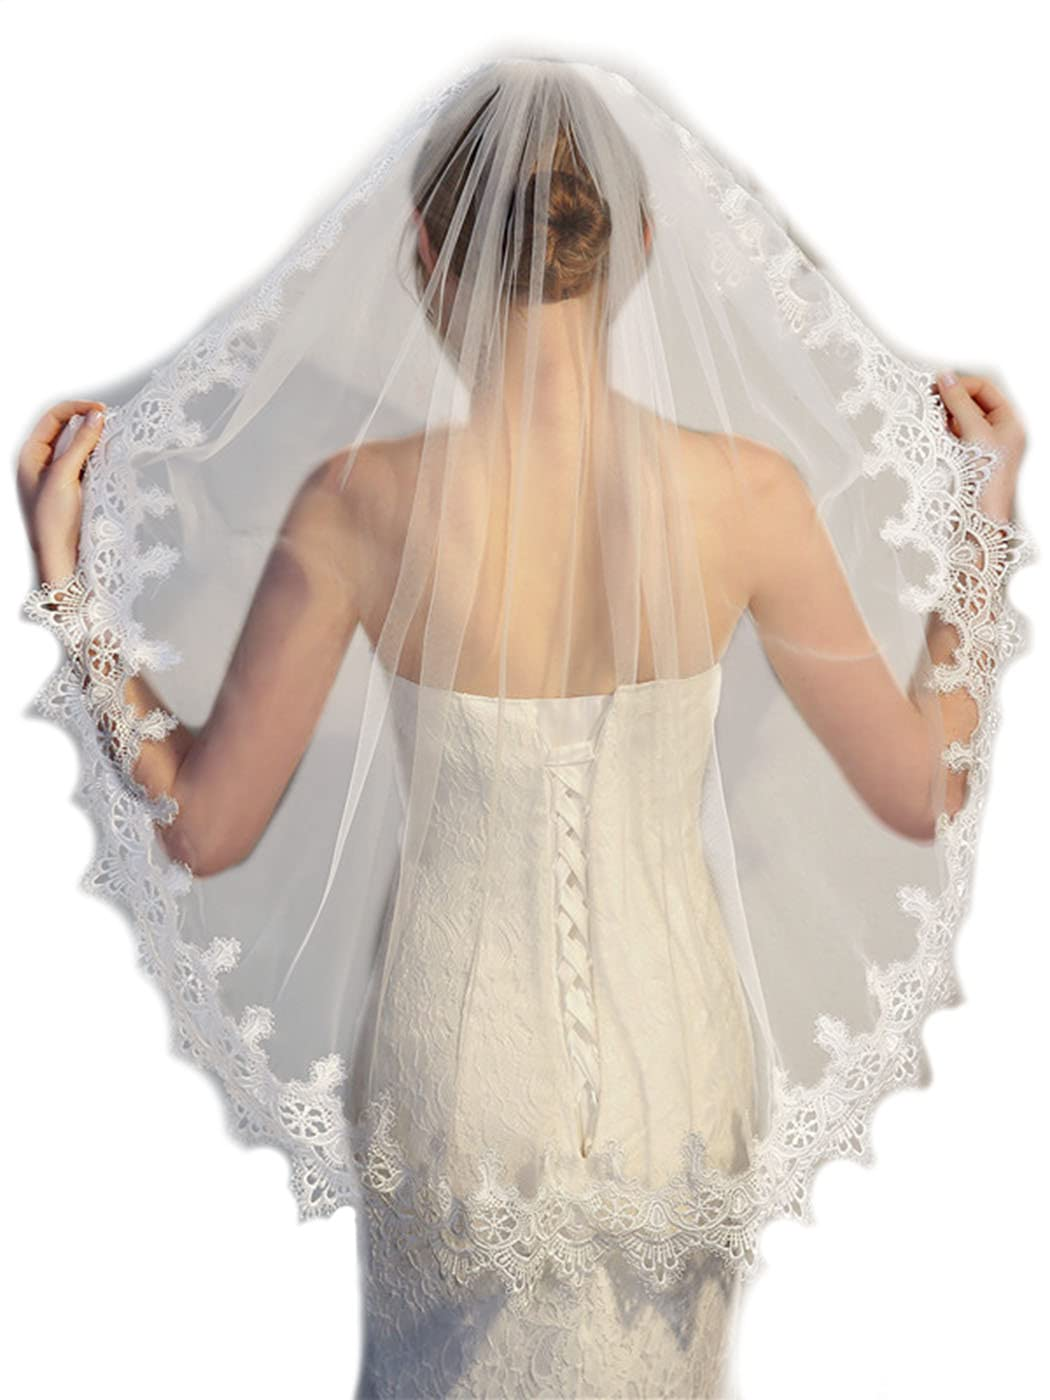 Yokawe Bride Wedding Veil 2 Tier Fingertip Length Bridal Tulle with Comb Lace Edge Hair Accessoies (White)